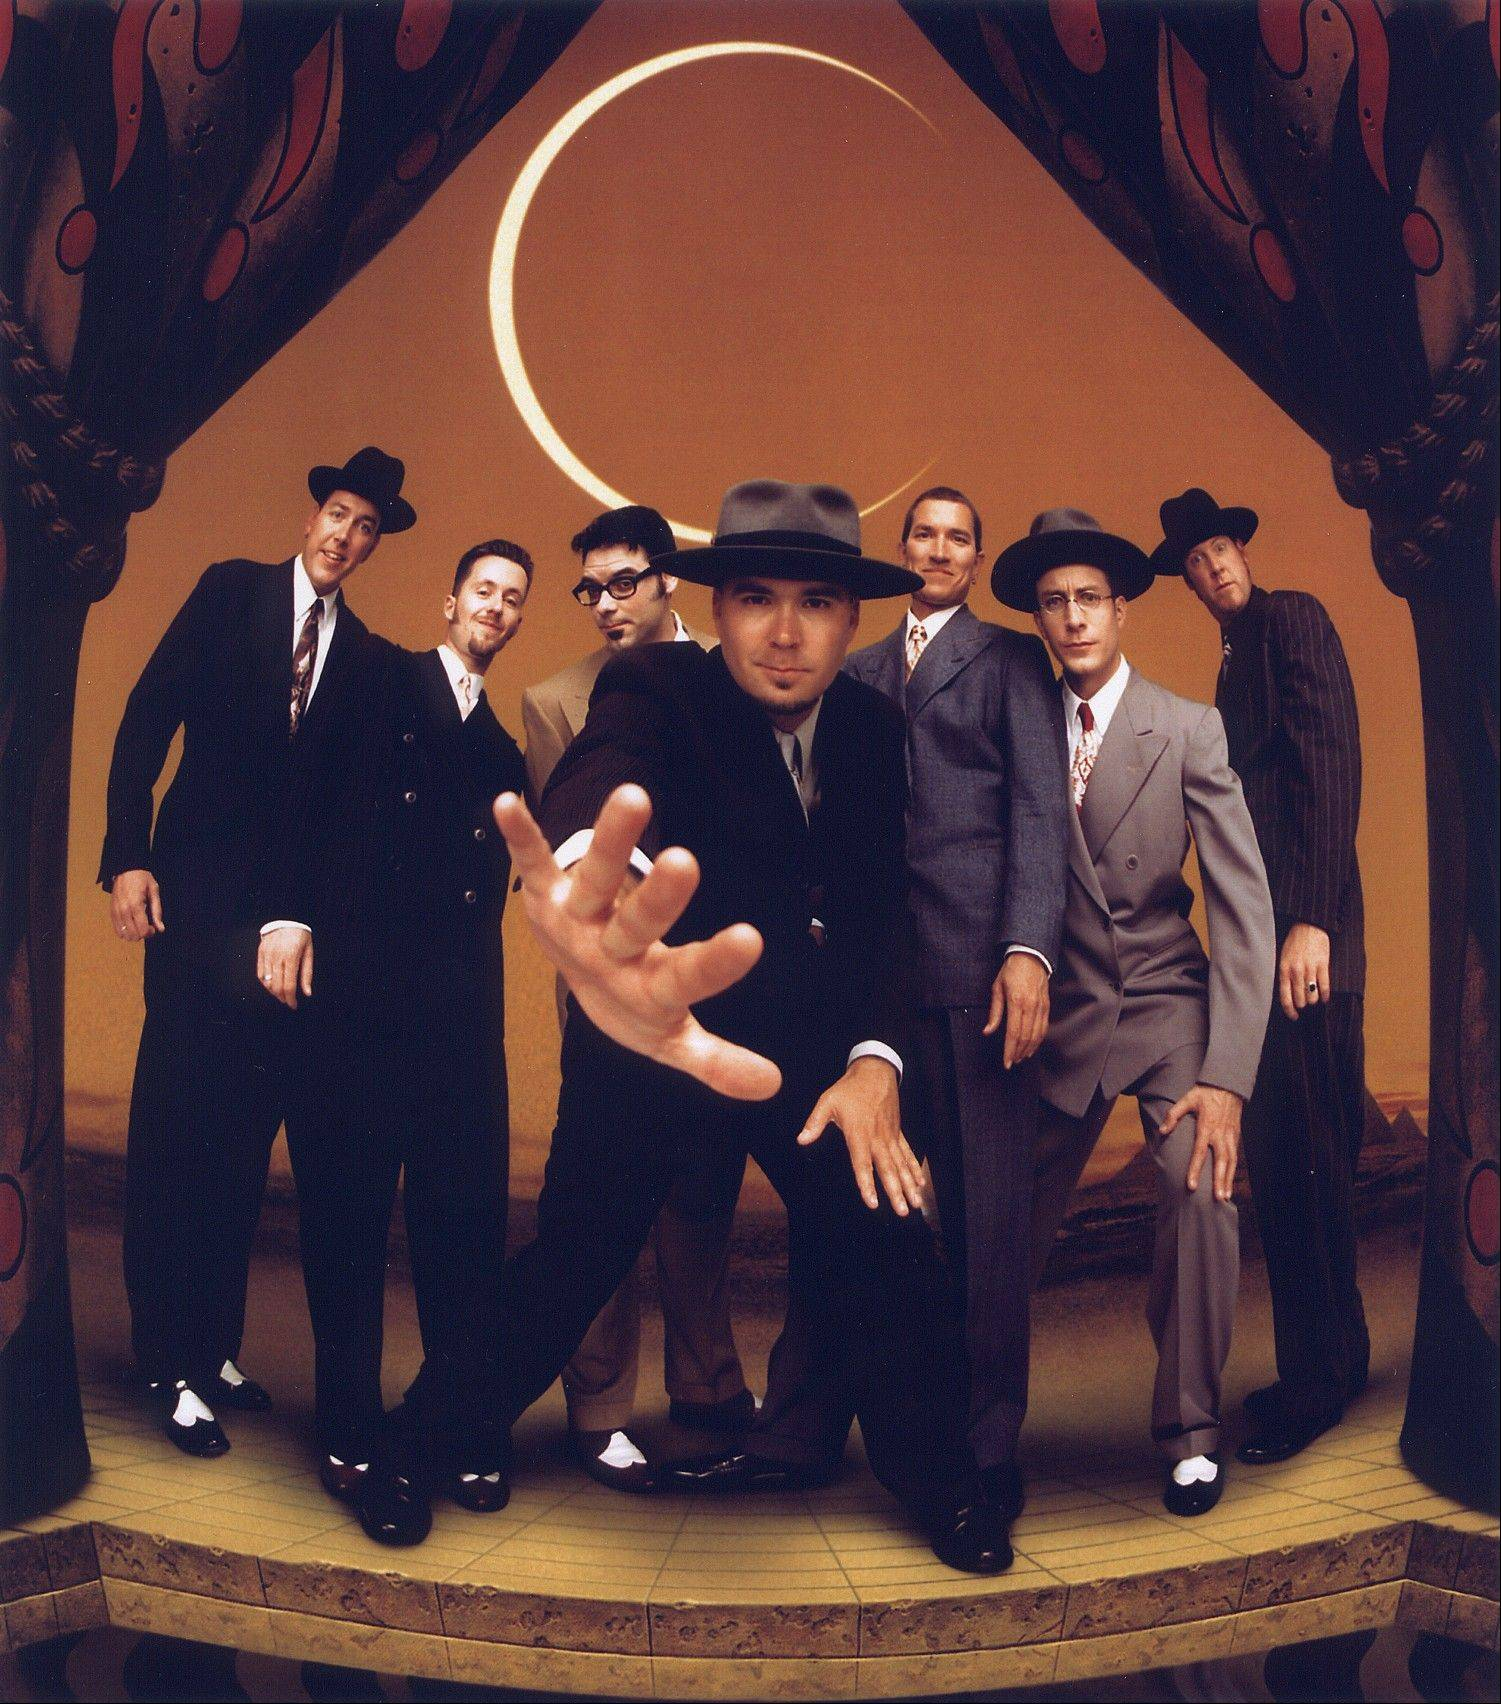 Big Bad Voodoo Daddy is set to perform at the Raue Center for the Arts in Crystal Lake.